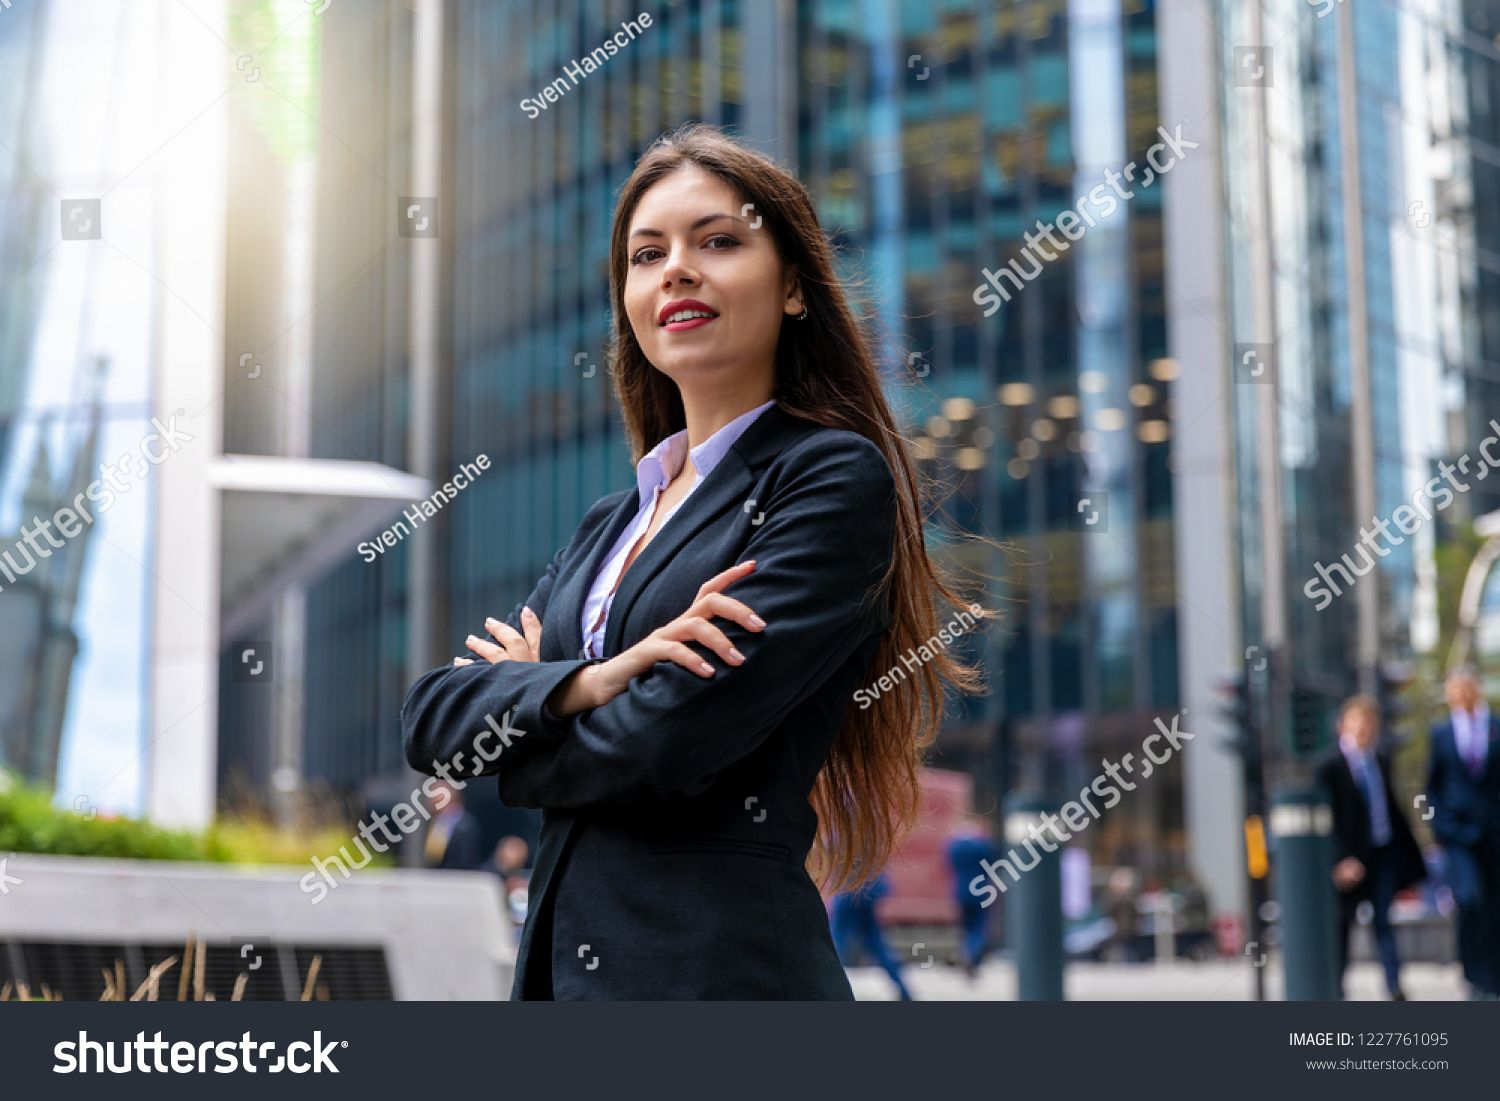 Confident Business Woman Portrait In The City Of London